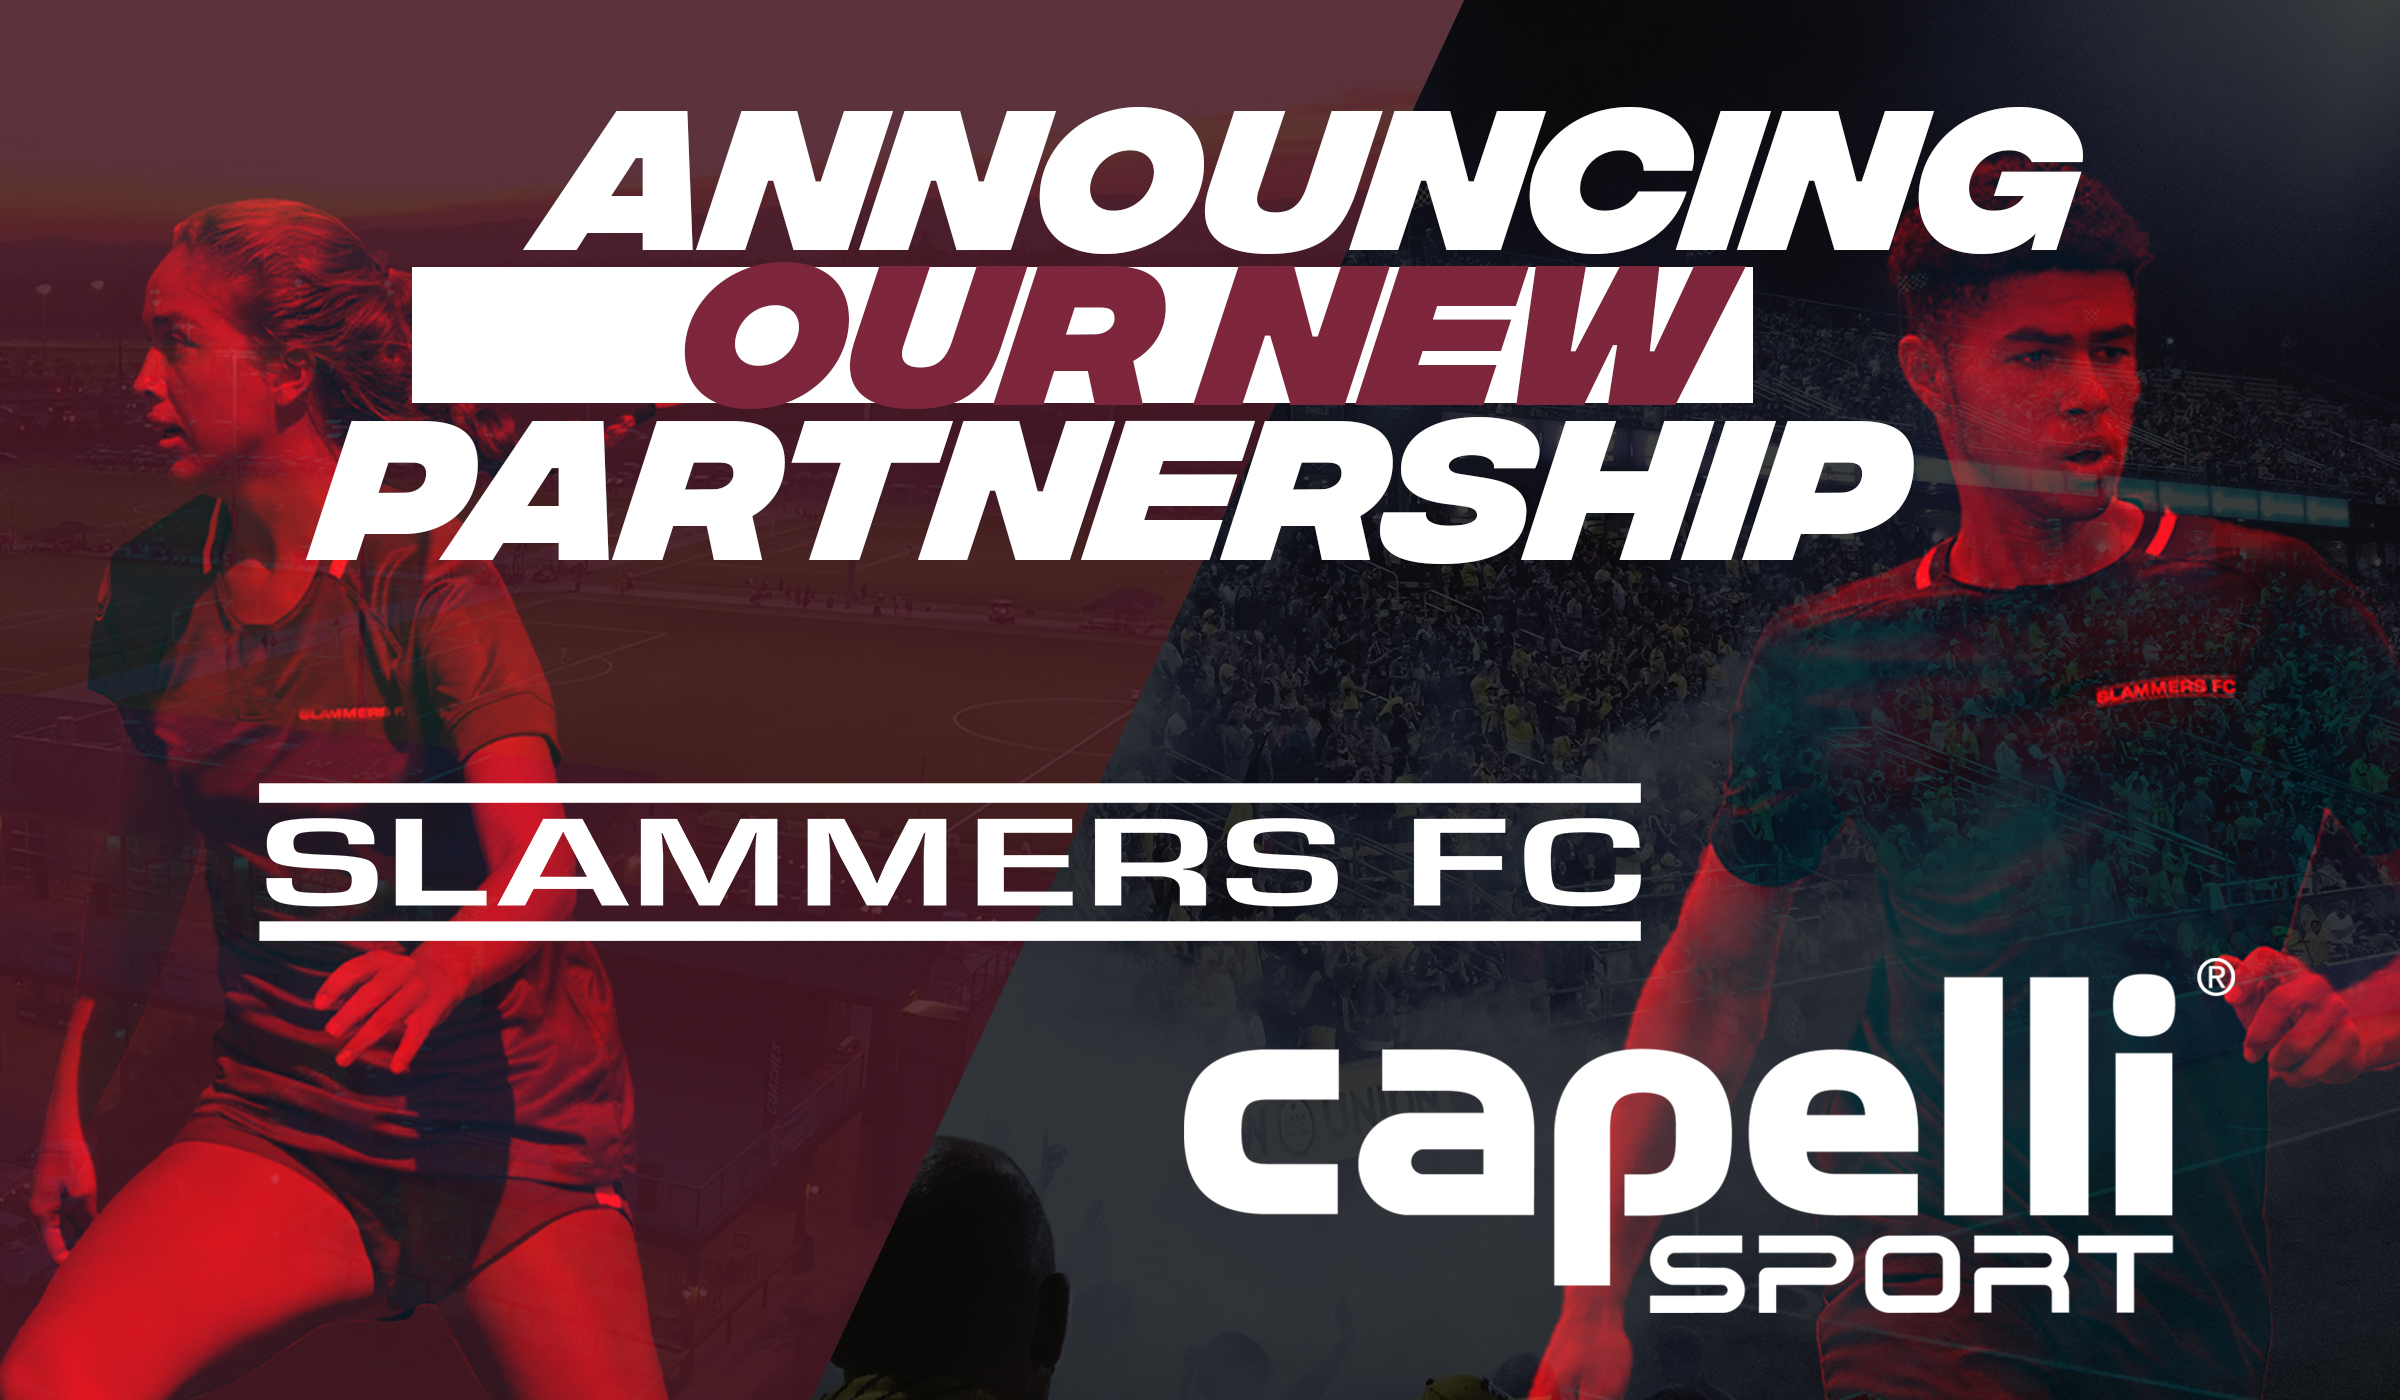 slammers fc and capelli sport logos